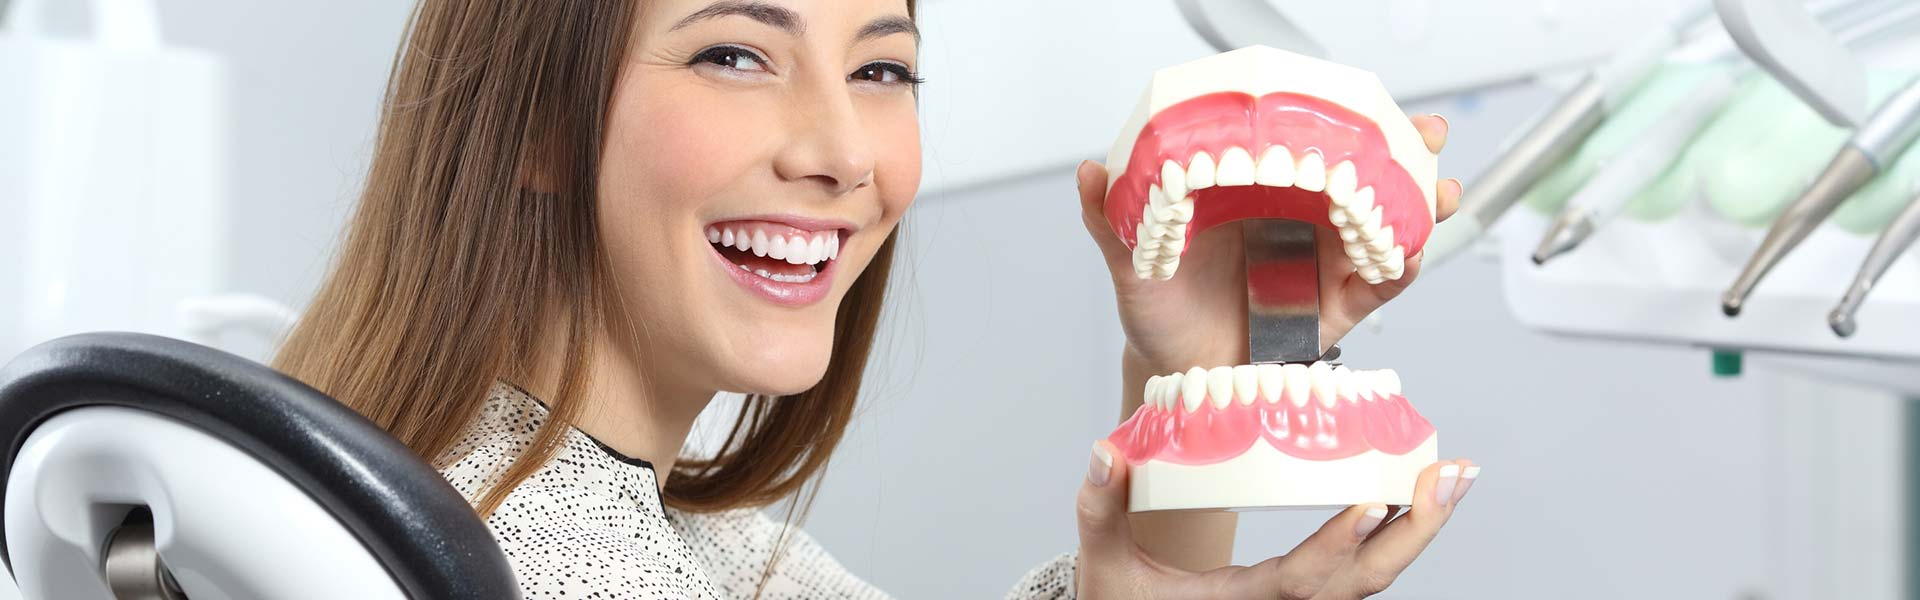 Smiling girl holding model of dentures